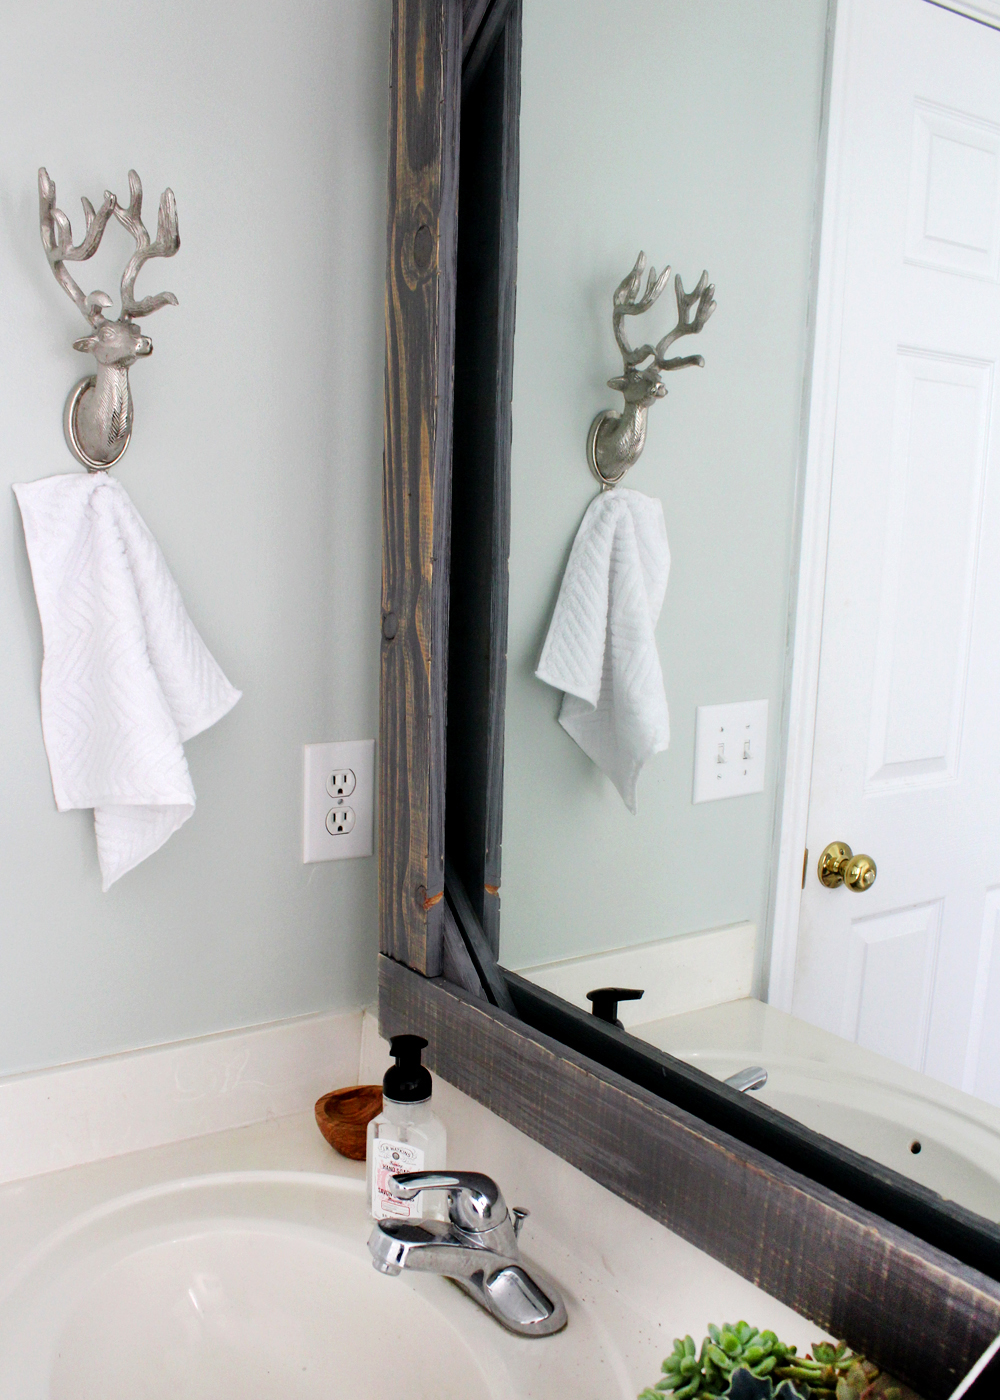 How to Build your Own Rustic Mirror Frame #DIY #HomeDecor